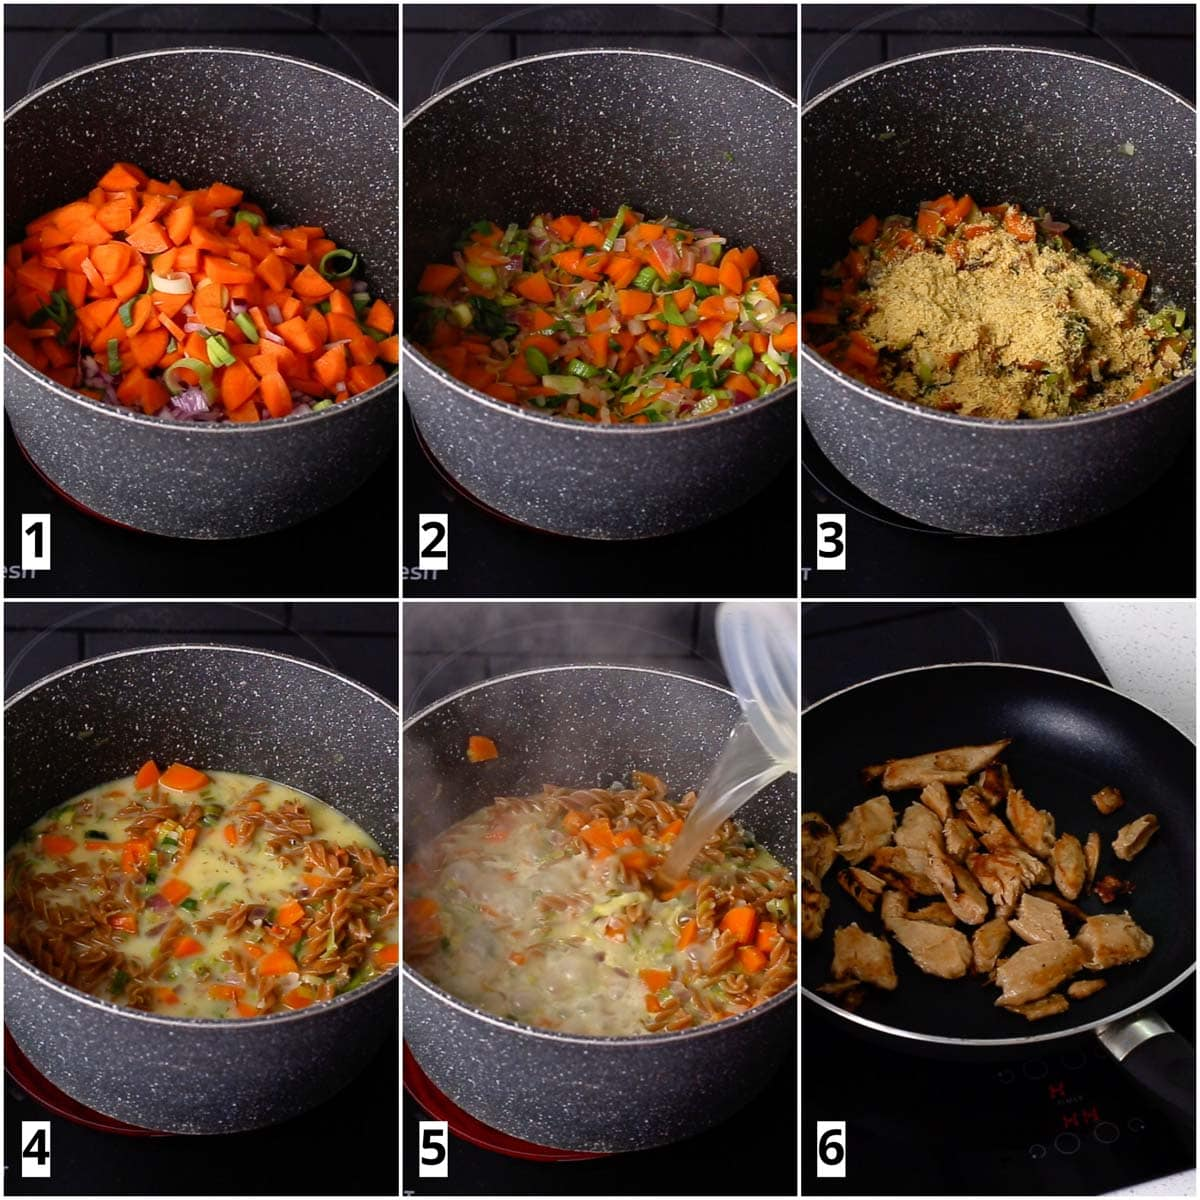 A collage of six images showing soup being cooked from start to end.